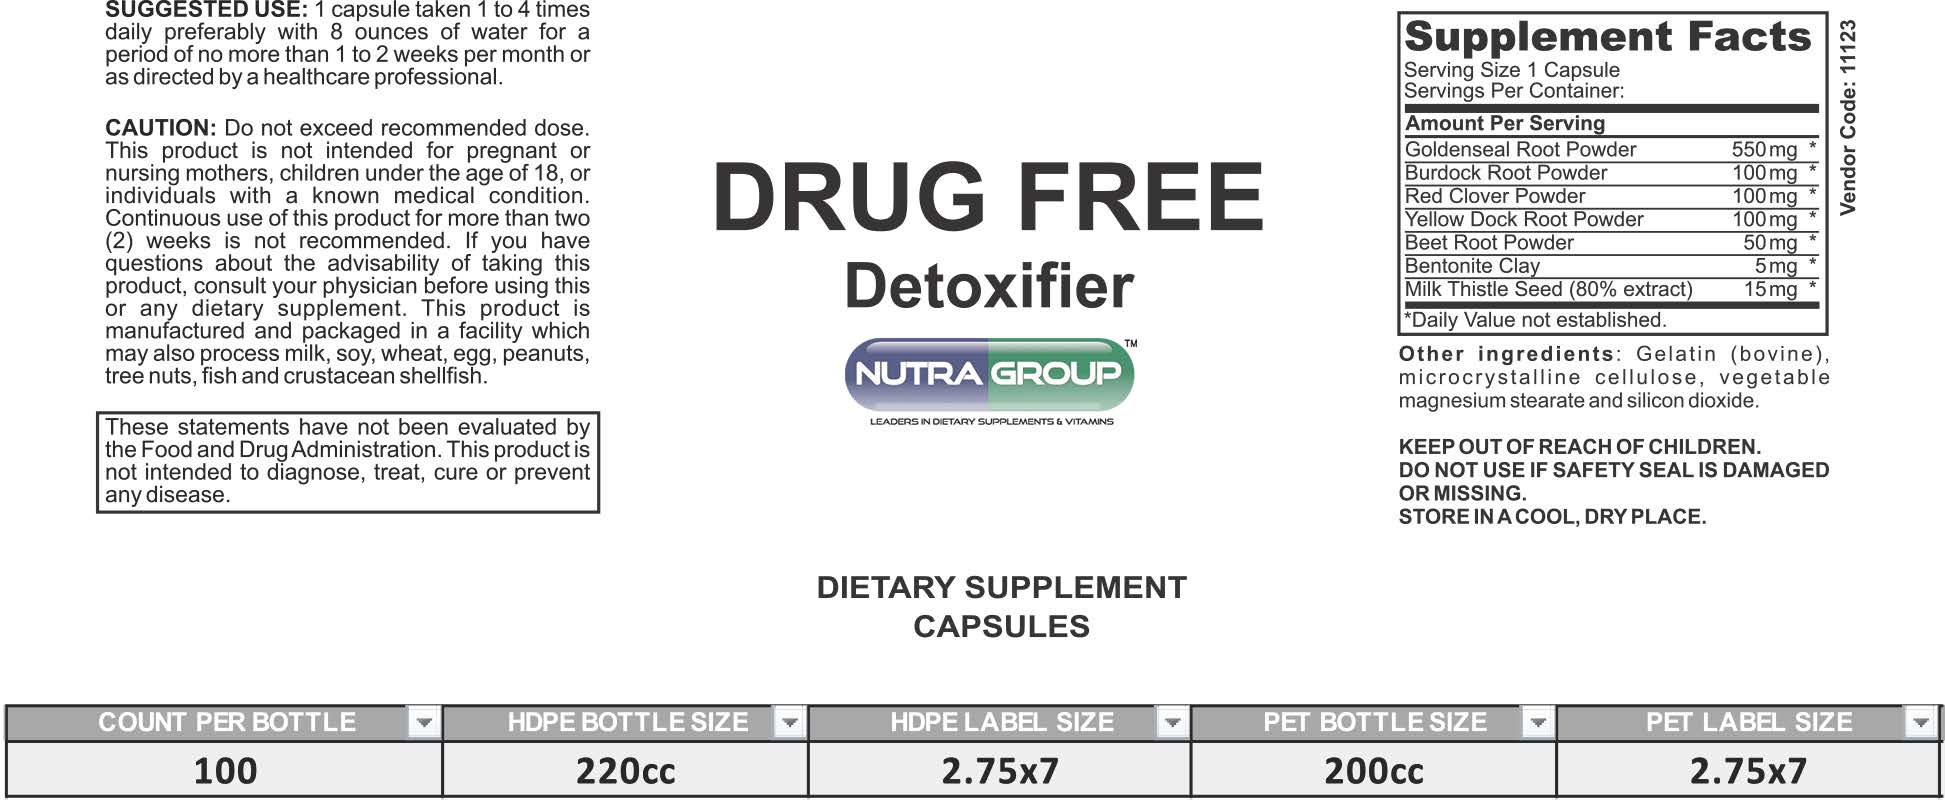 Private Label Drug Free Detoxifier Supplement